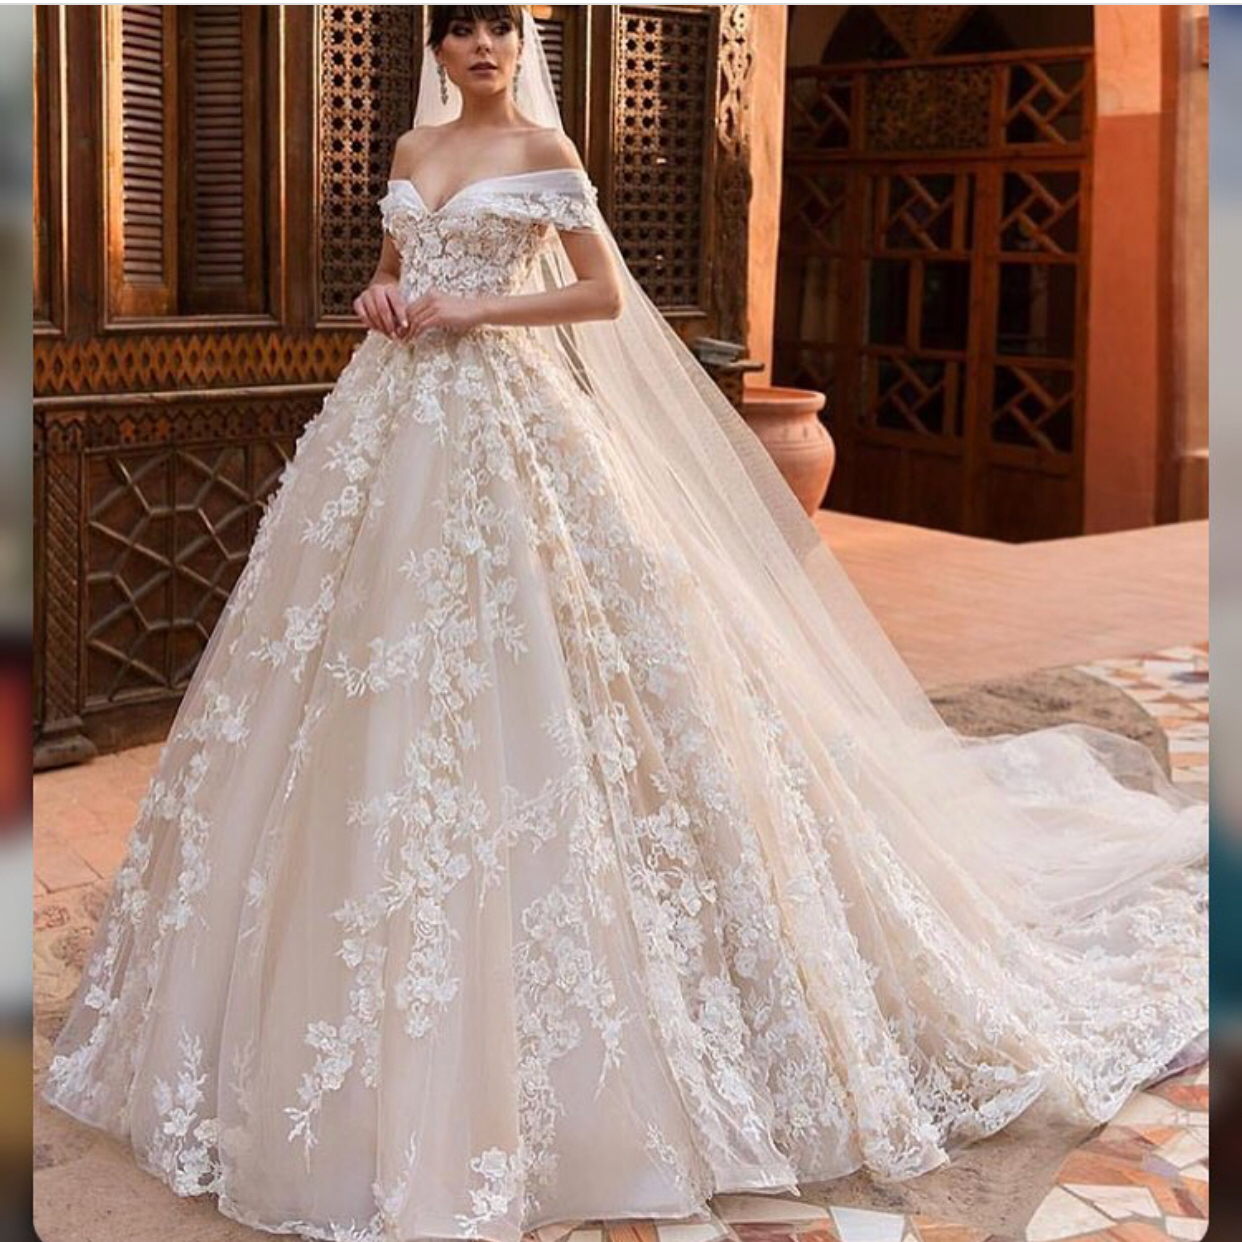 Off the Shoulder Wedding Dress, Lace Applique Wedding Dress, Wedding Dresses 2018, Elegant Wedding Dress, V Neck Wedding Dress, Cheap Wedding Dress, Vestido De Novia, Wedding Ball Gown, Champagne Wedding Dress